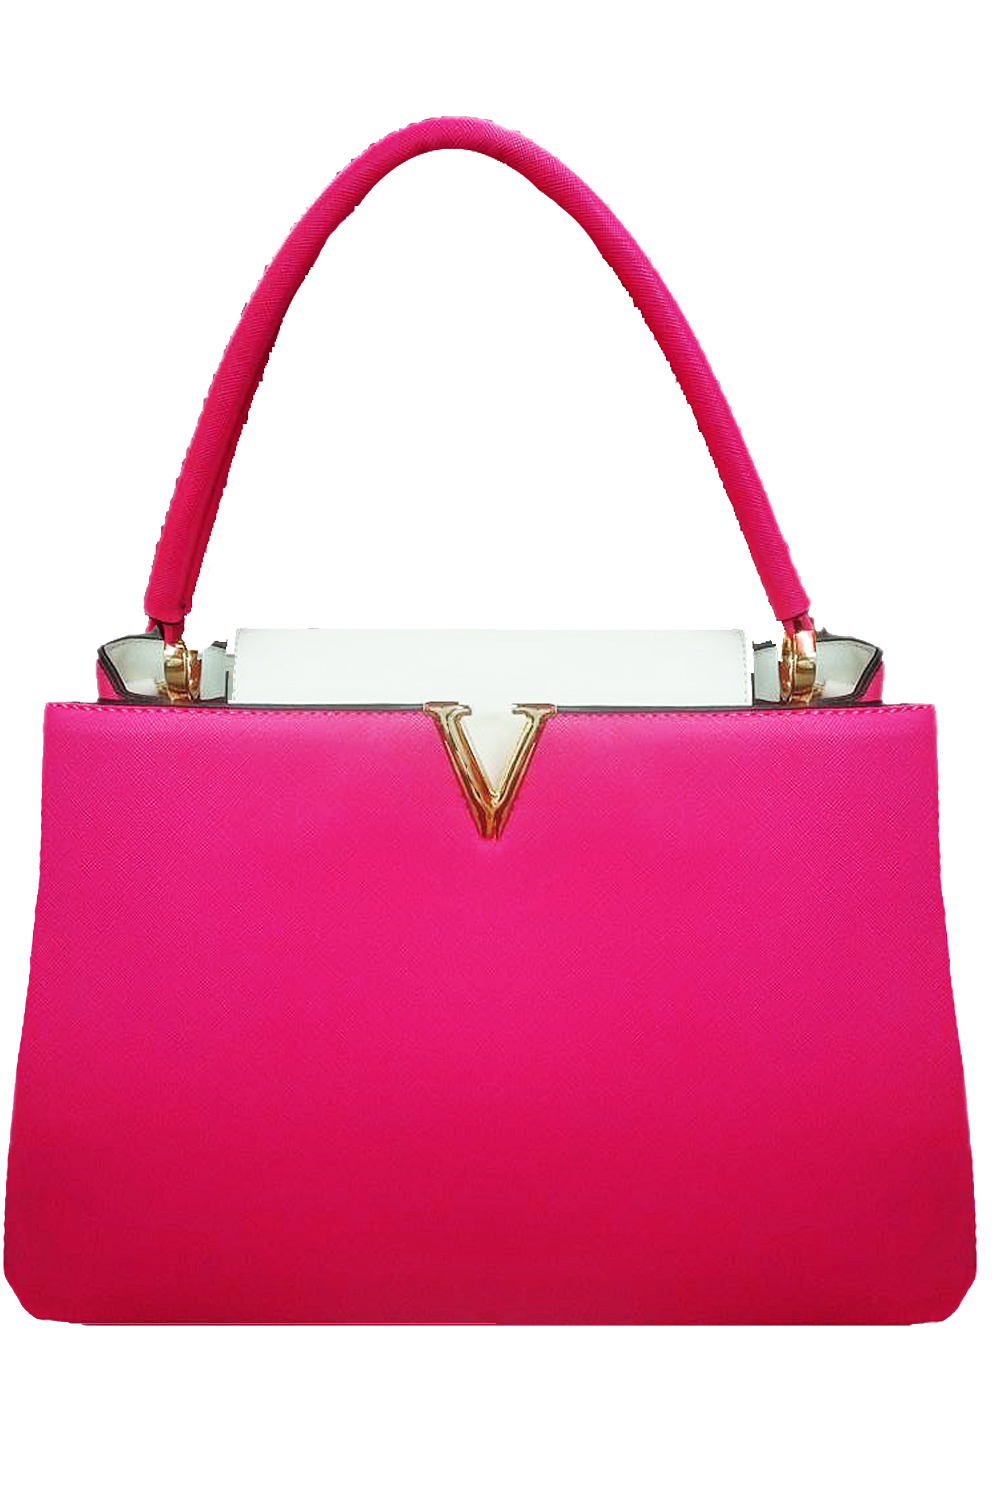 Panache Boutique Dover Rose Celine Handbag